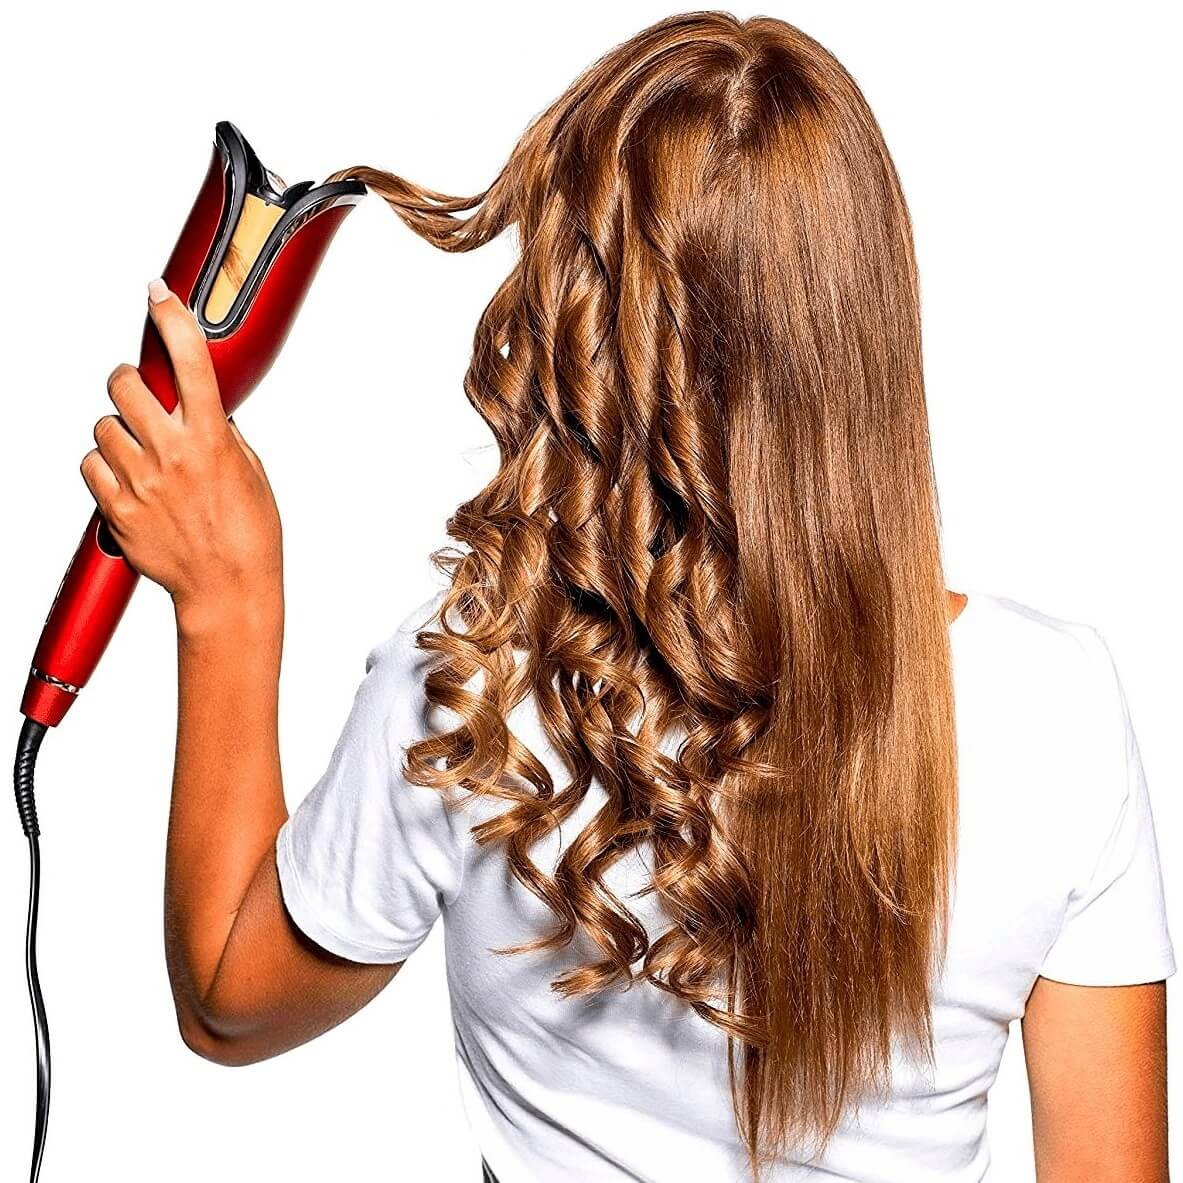 How To Curl Hair With Curling Iron